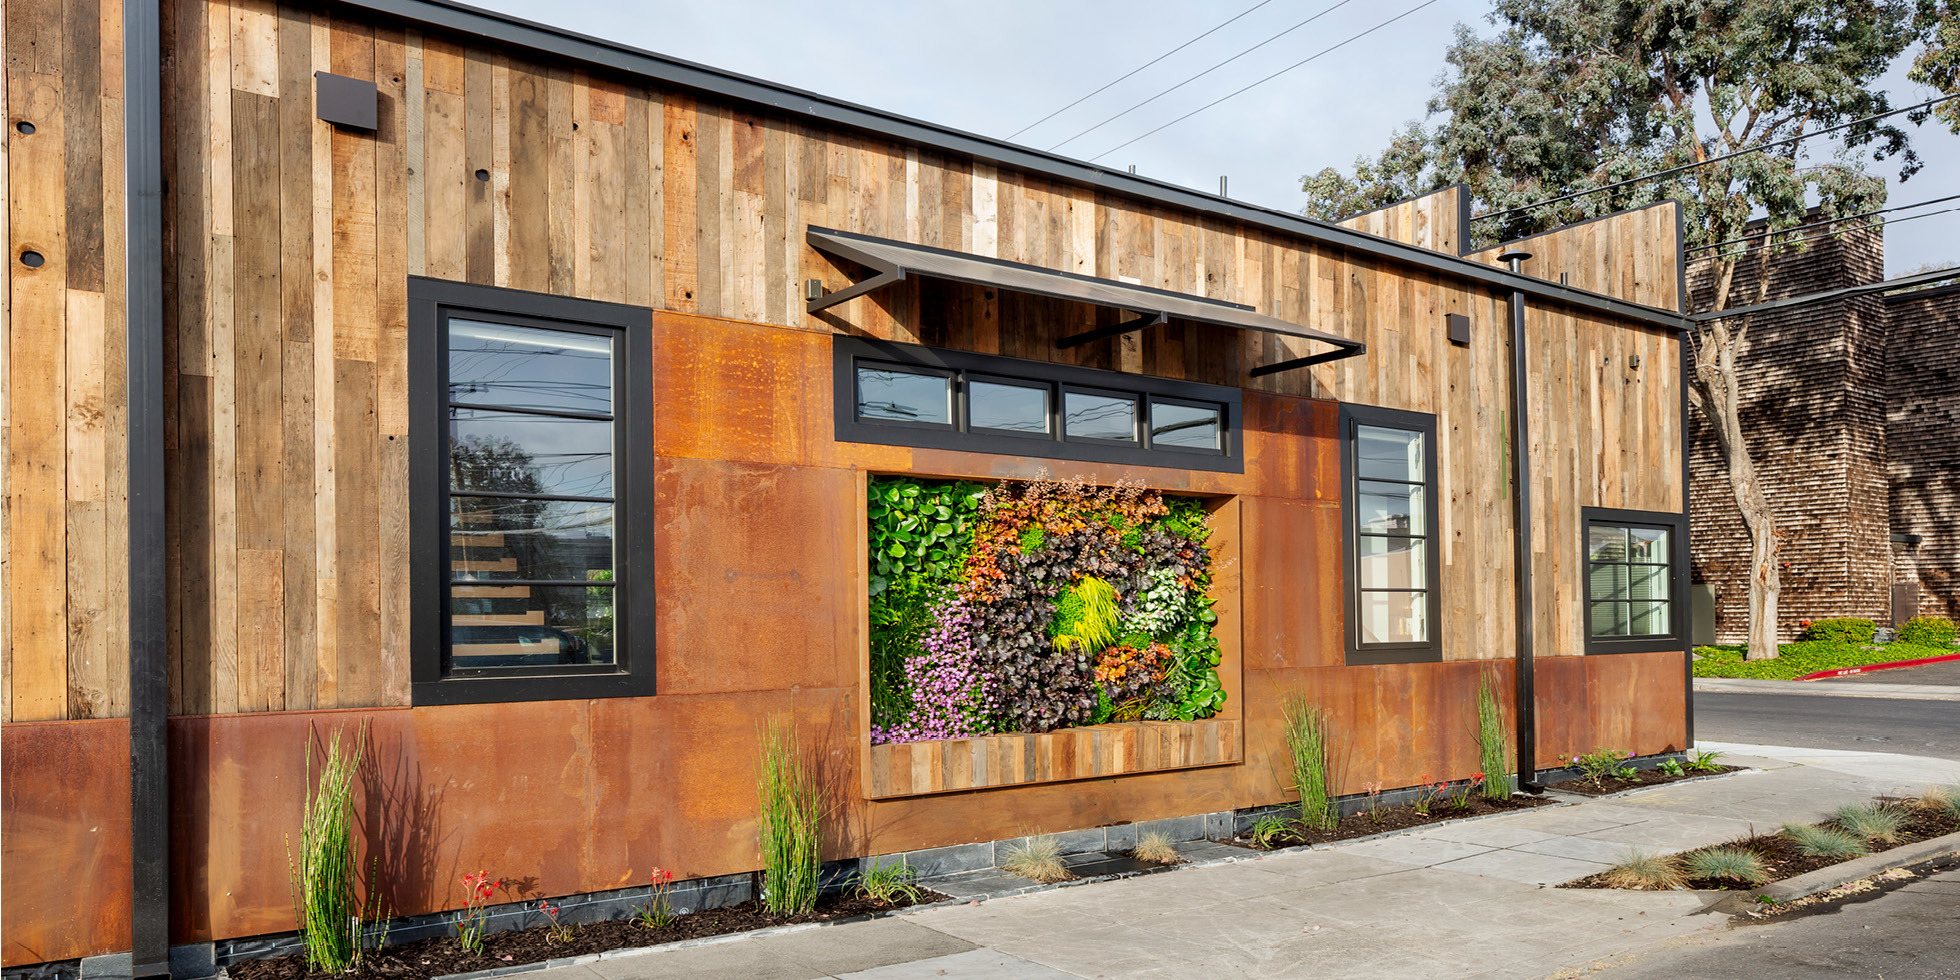 Redwood City Residence Living Wall by Habitat Horticulture - View 2